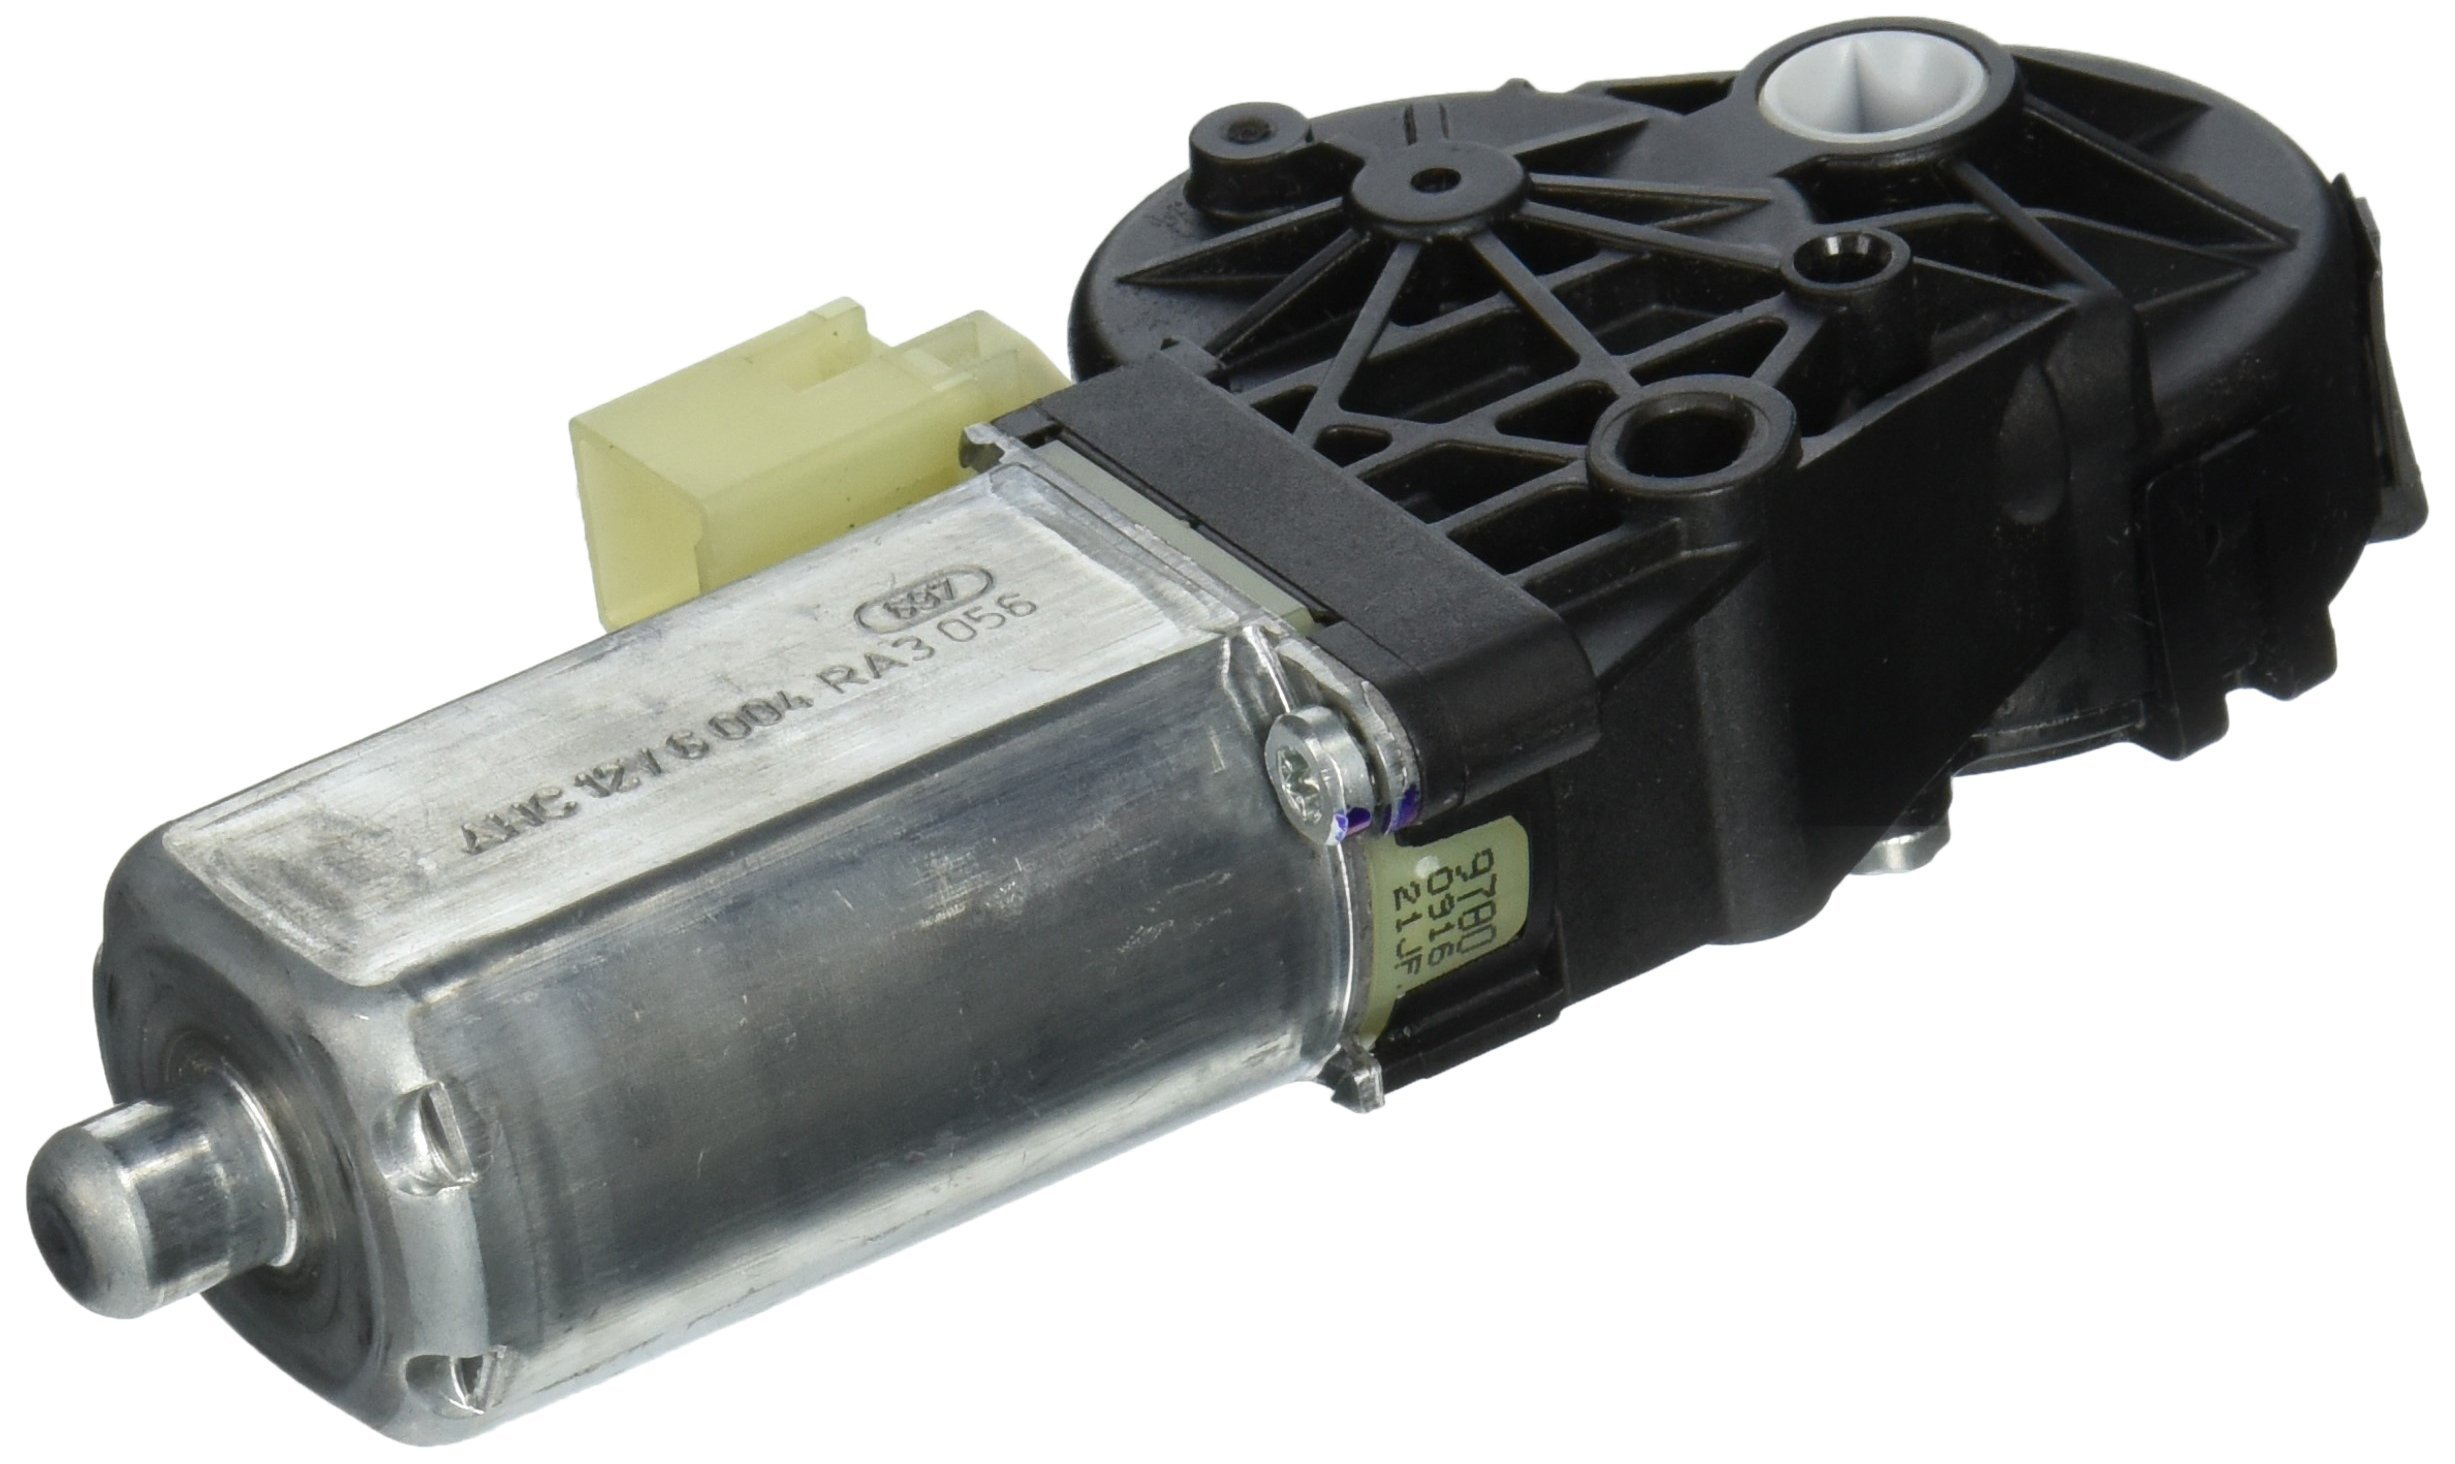 Motorcraft MM-991 Seat Actuator Motor